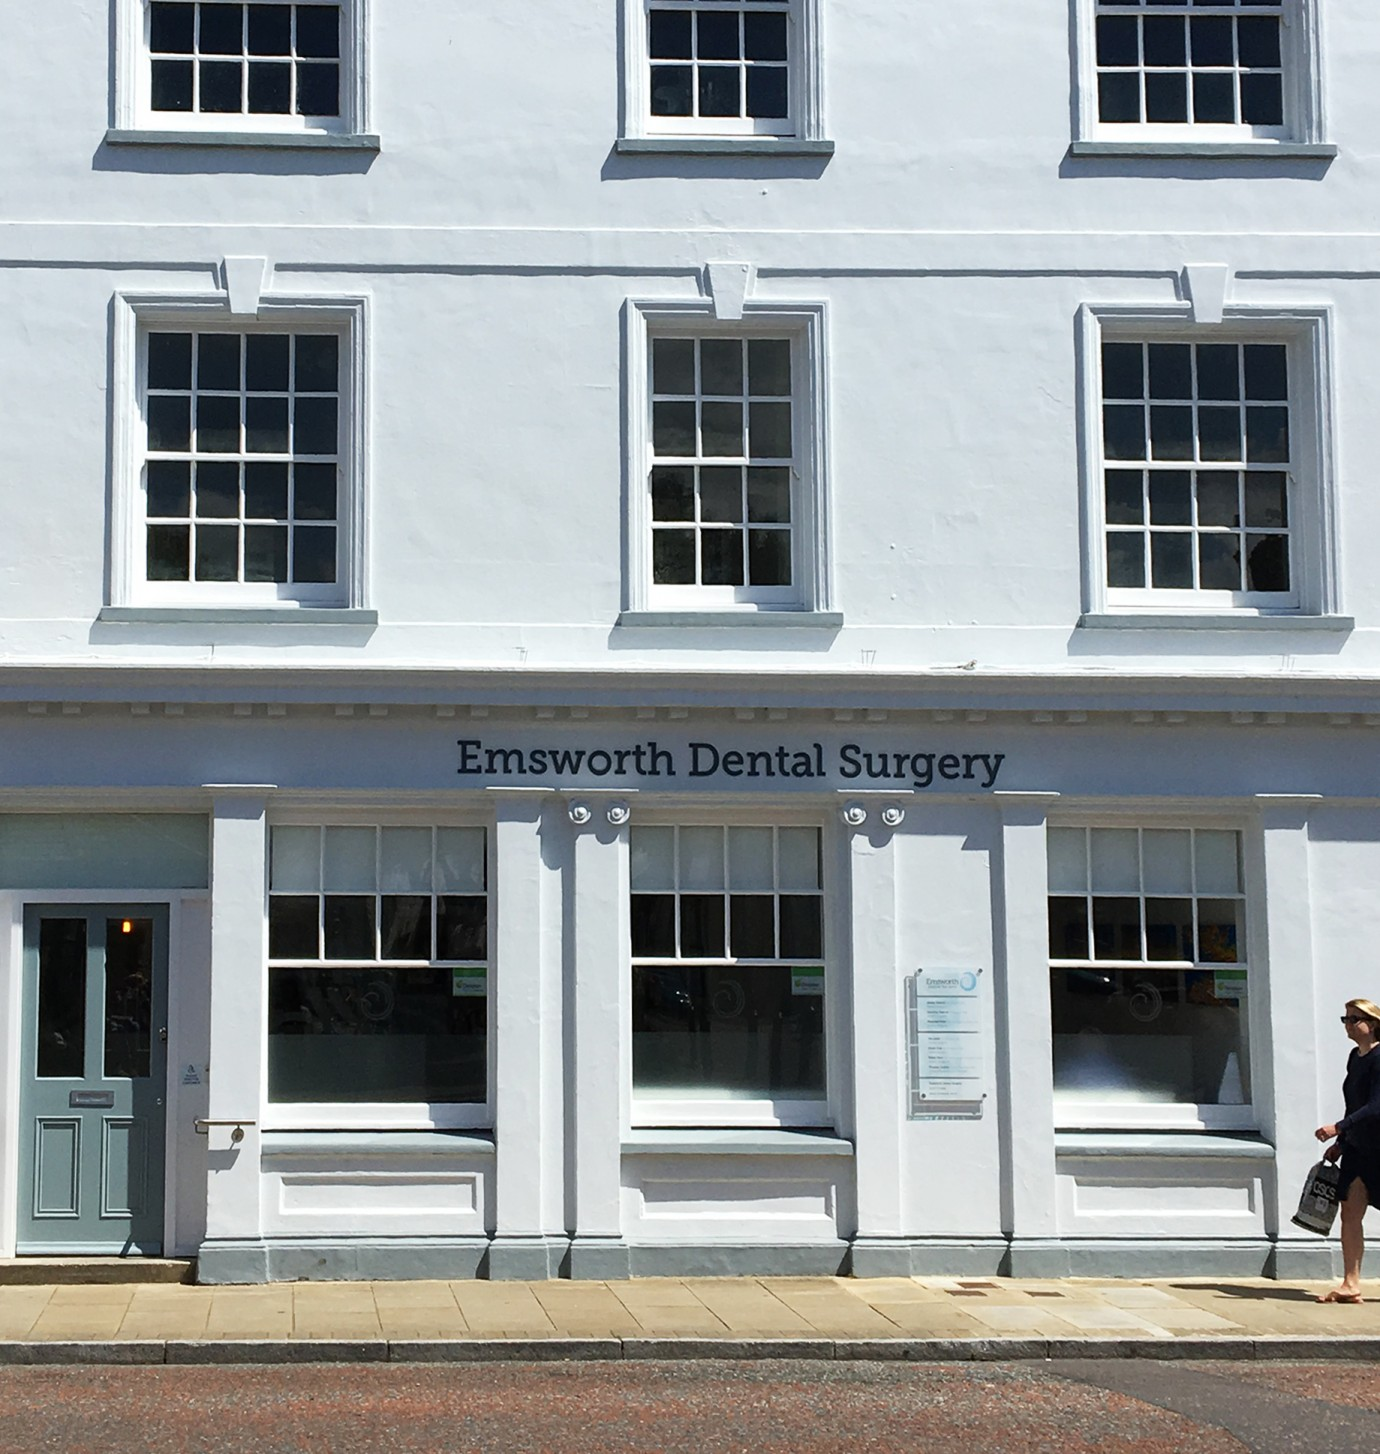 Emsworth Dental Surgery